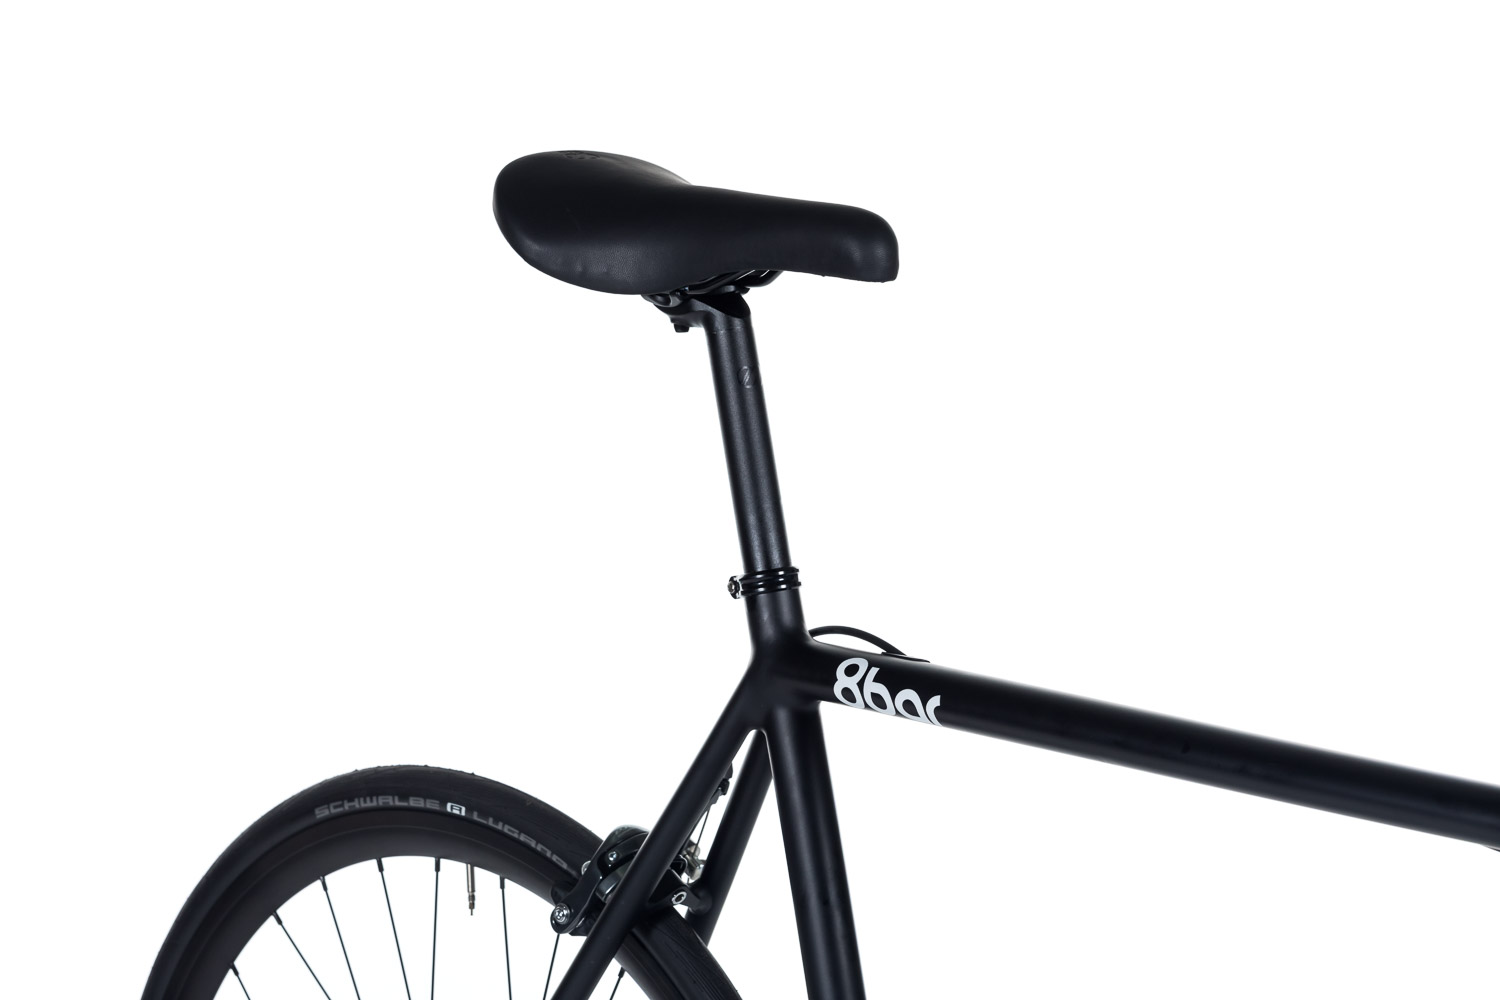 8bar-complete-bike-kronprinz-comp-black-studio-lr-5